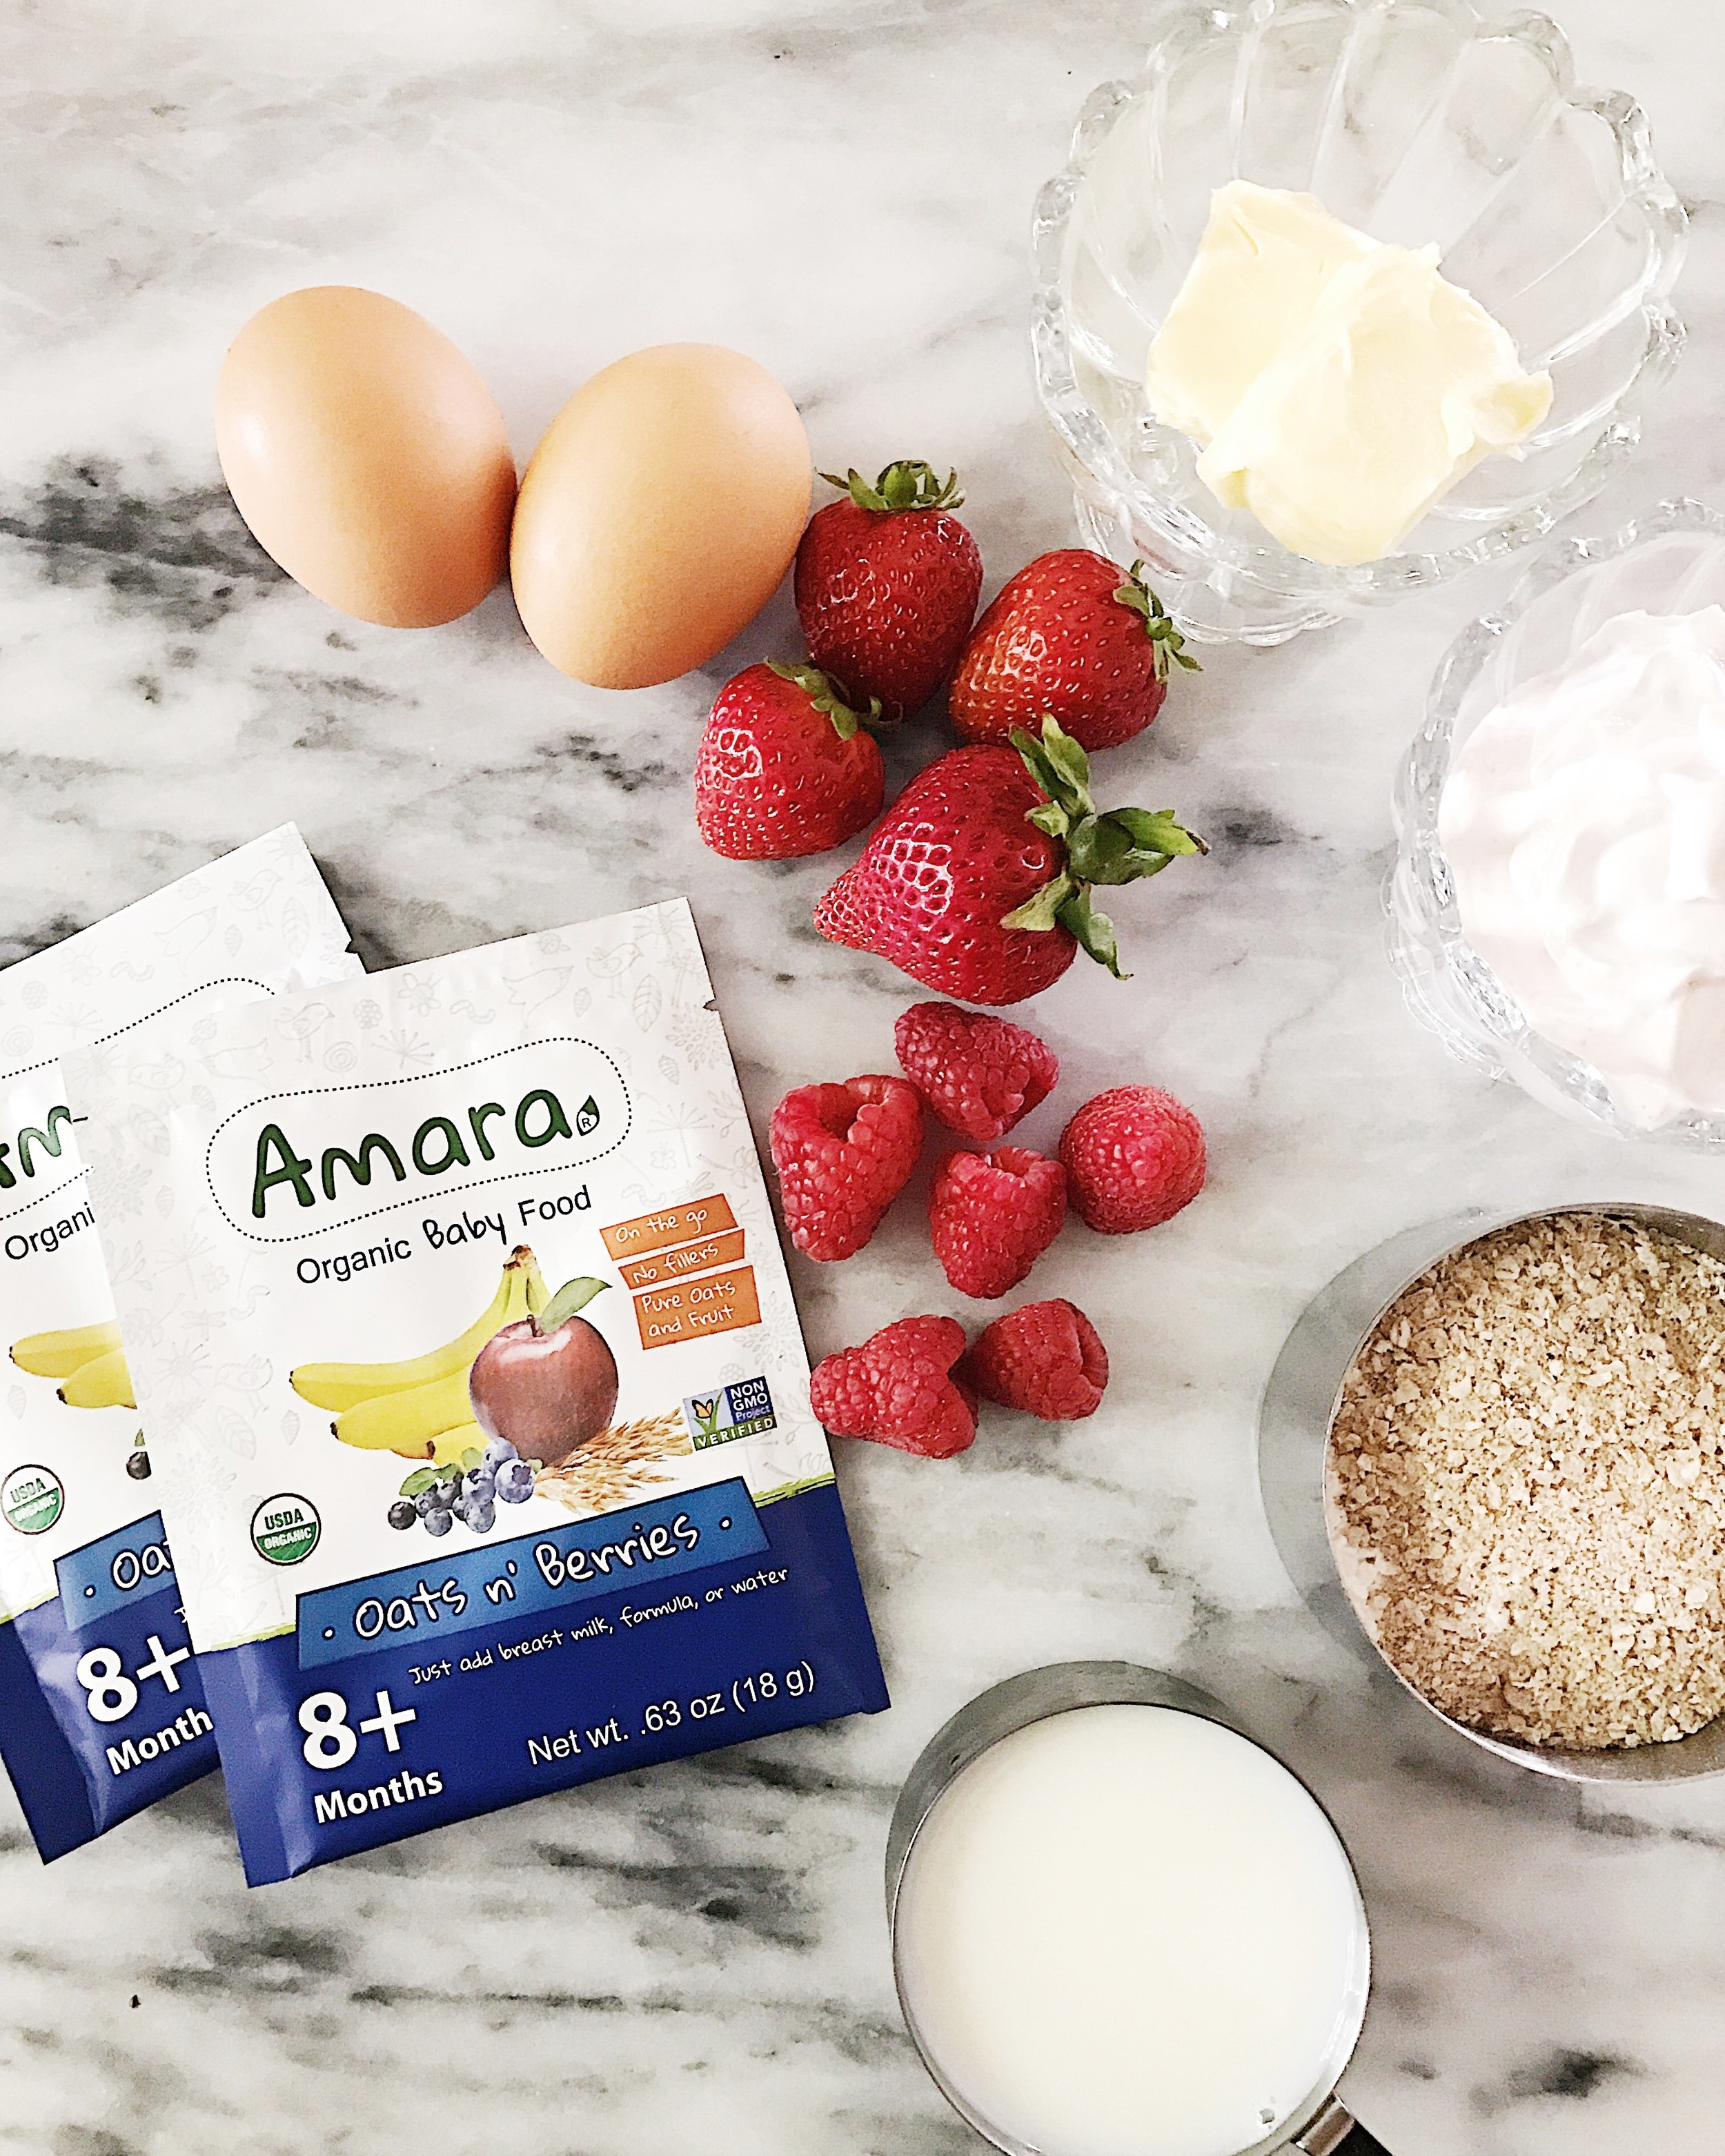 Organic Oats n Berries Crepe Recipe - Cooking with Amara Baby Food